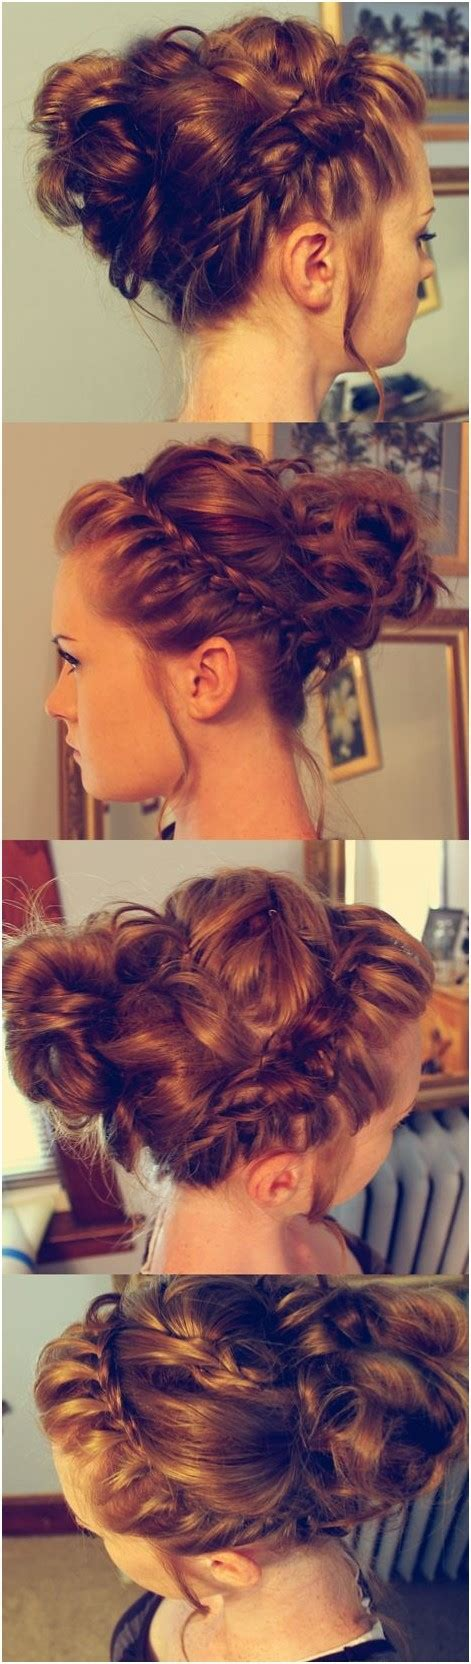 cheap xmas bun ideas 15 braided bun updos ideas popular haircuts